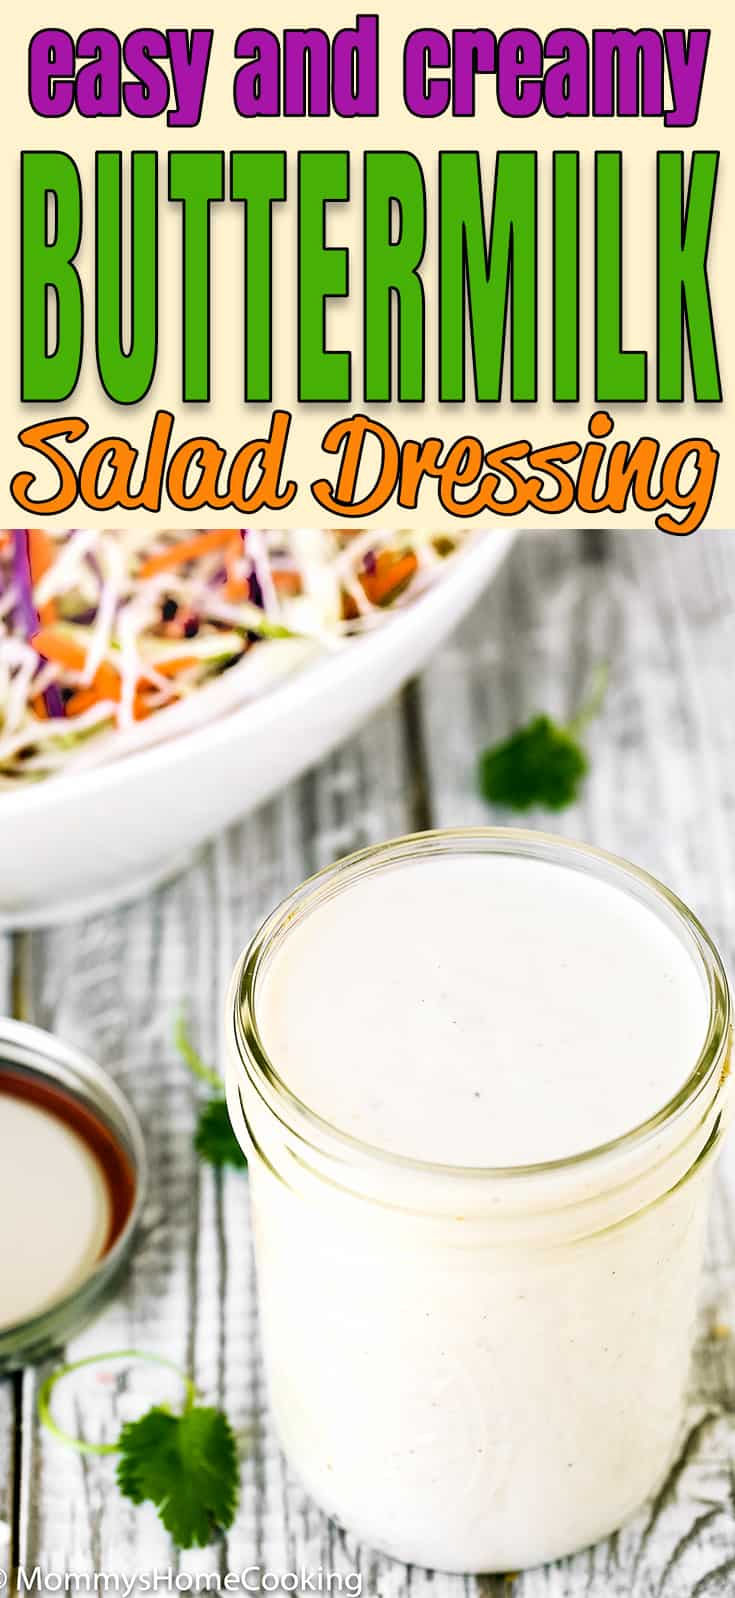 This Buttermilk Salad Dressing is quick, simple, creamy and epically delicious!! Perfect to dress coleslaw, mixed greens, cold pasta salads, steamed broccoli or asparagus spears, as a dip for crunchy vegetables, chips, or sweet potato fries. So much better than any store-bought dressing. https://mommyshomecooking.com